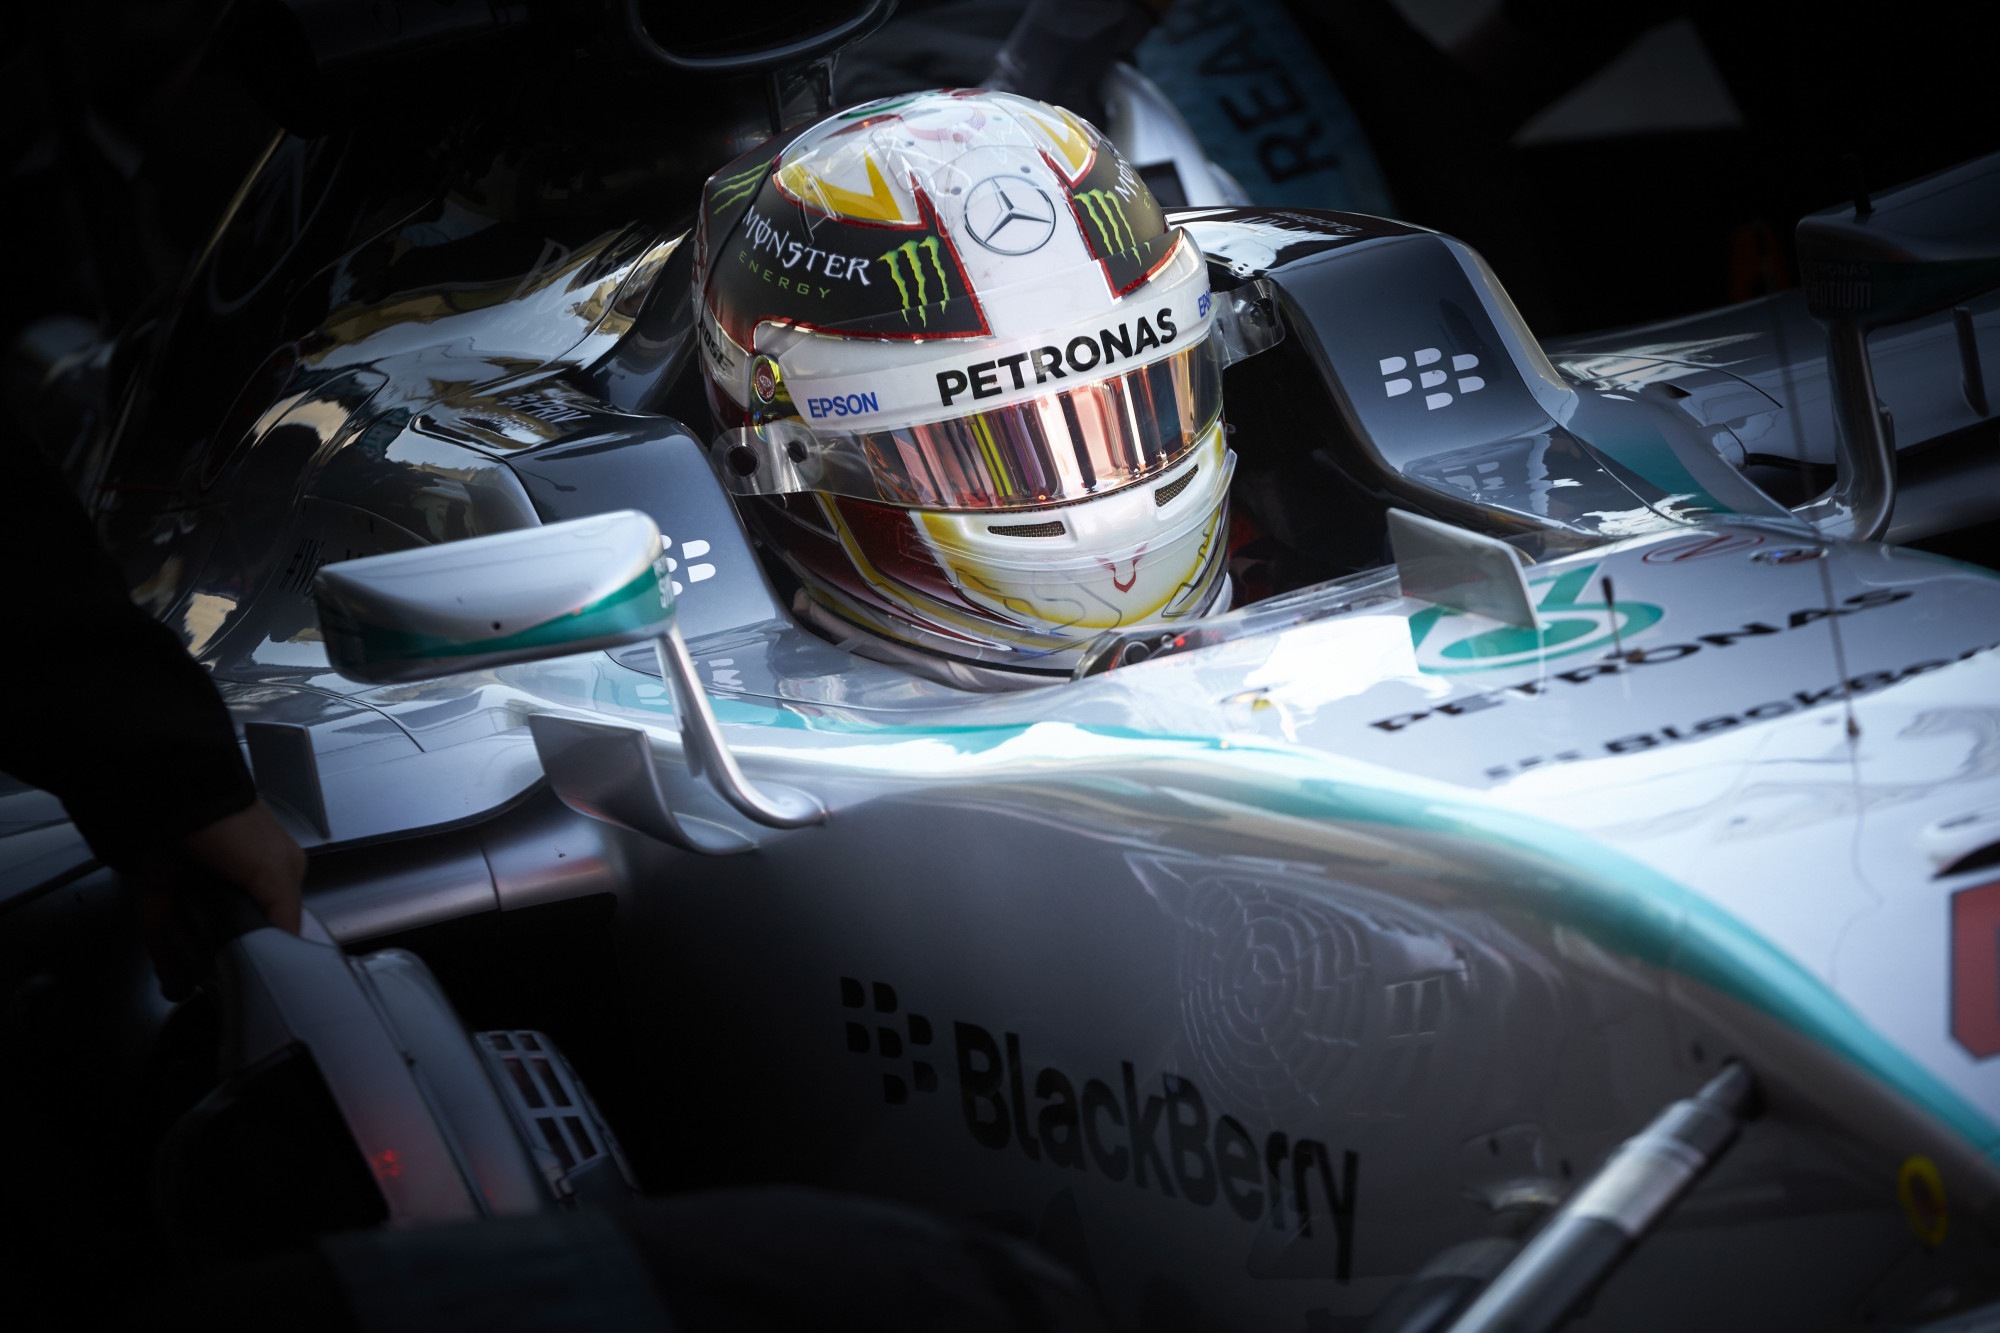 hamilton-mercedes-abu-dhabi-GP-F1-2015-garage-close